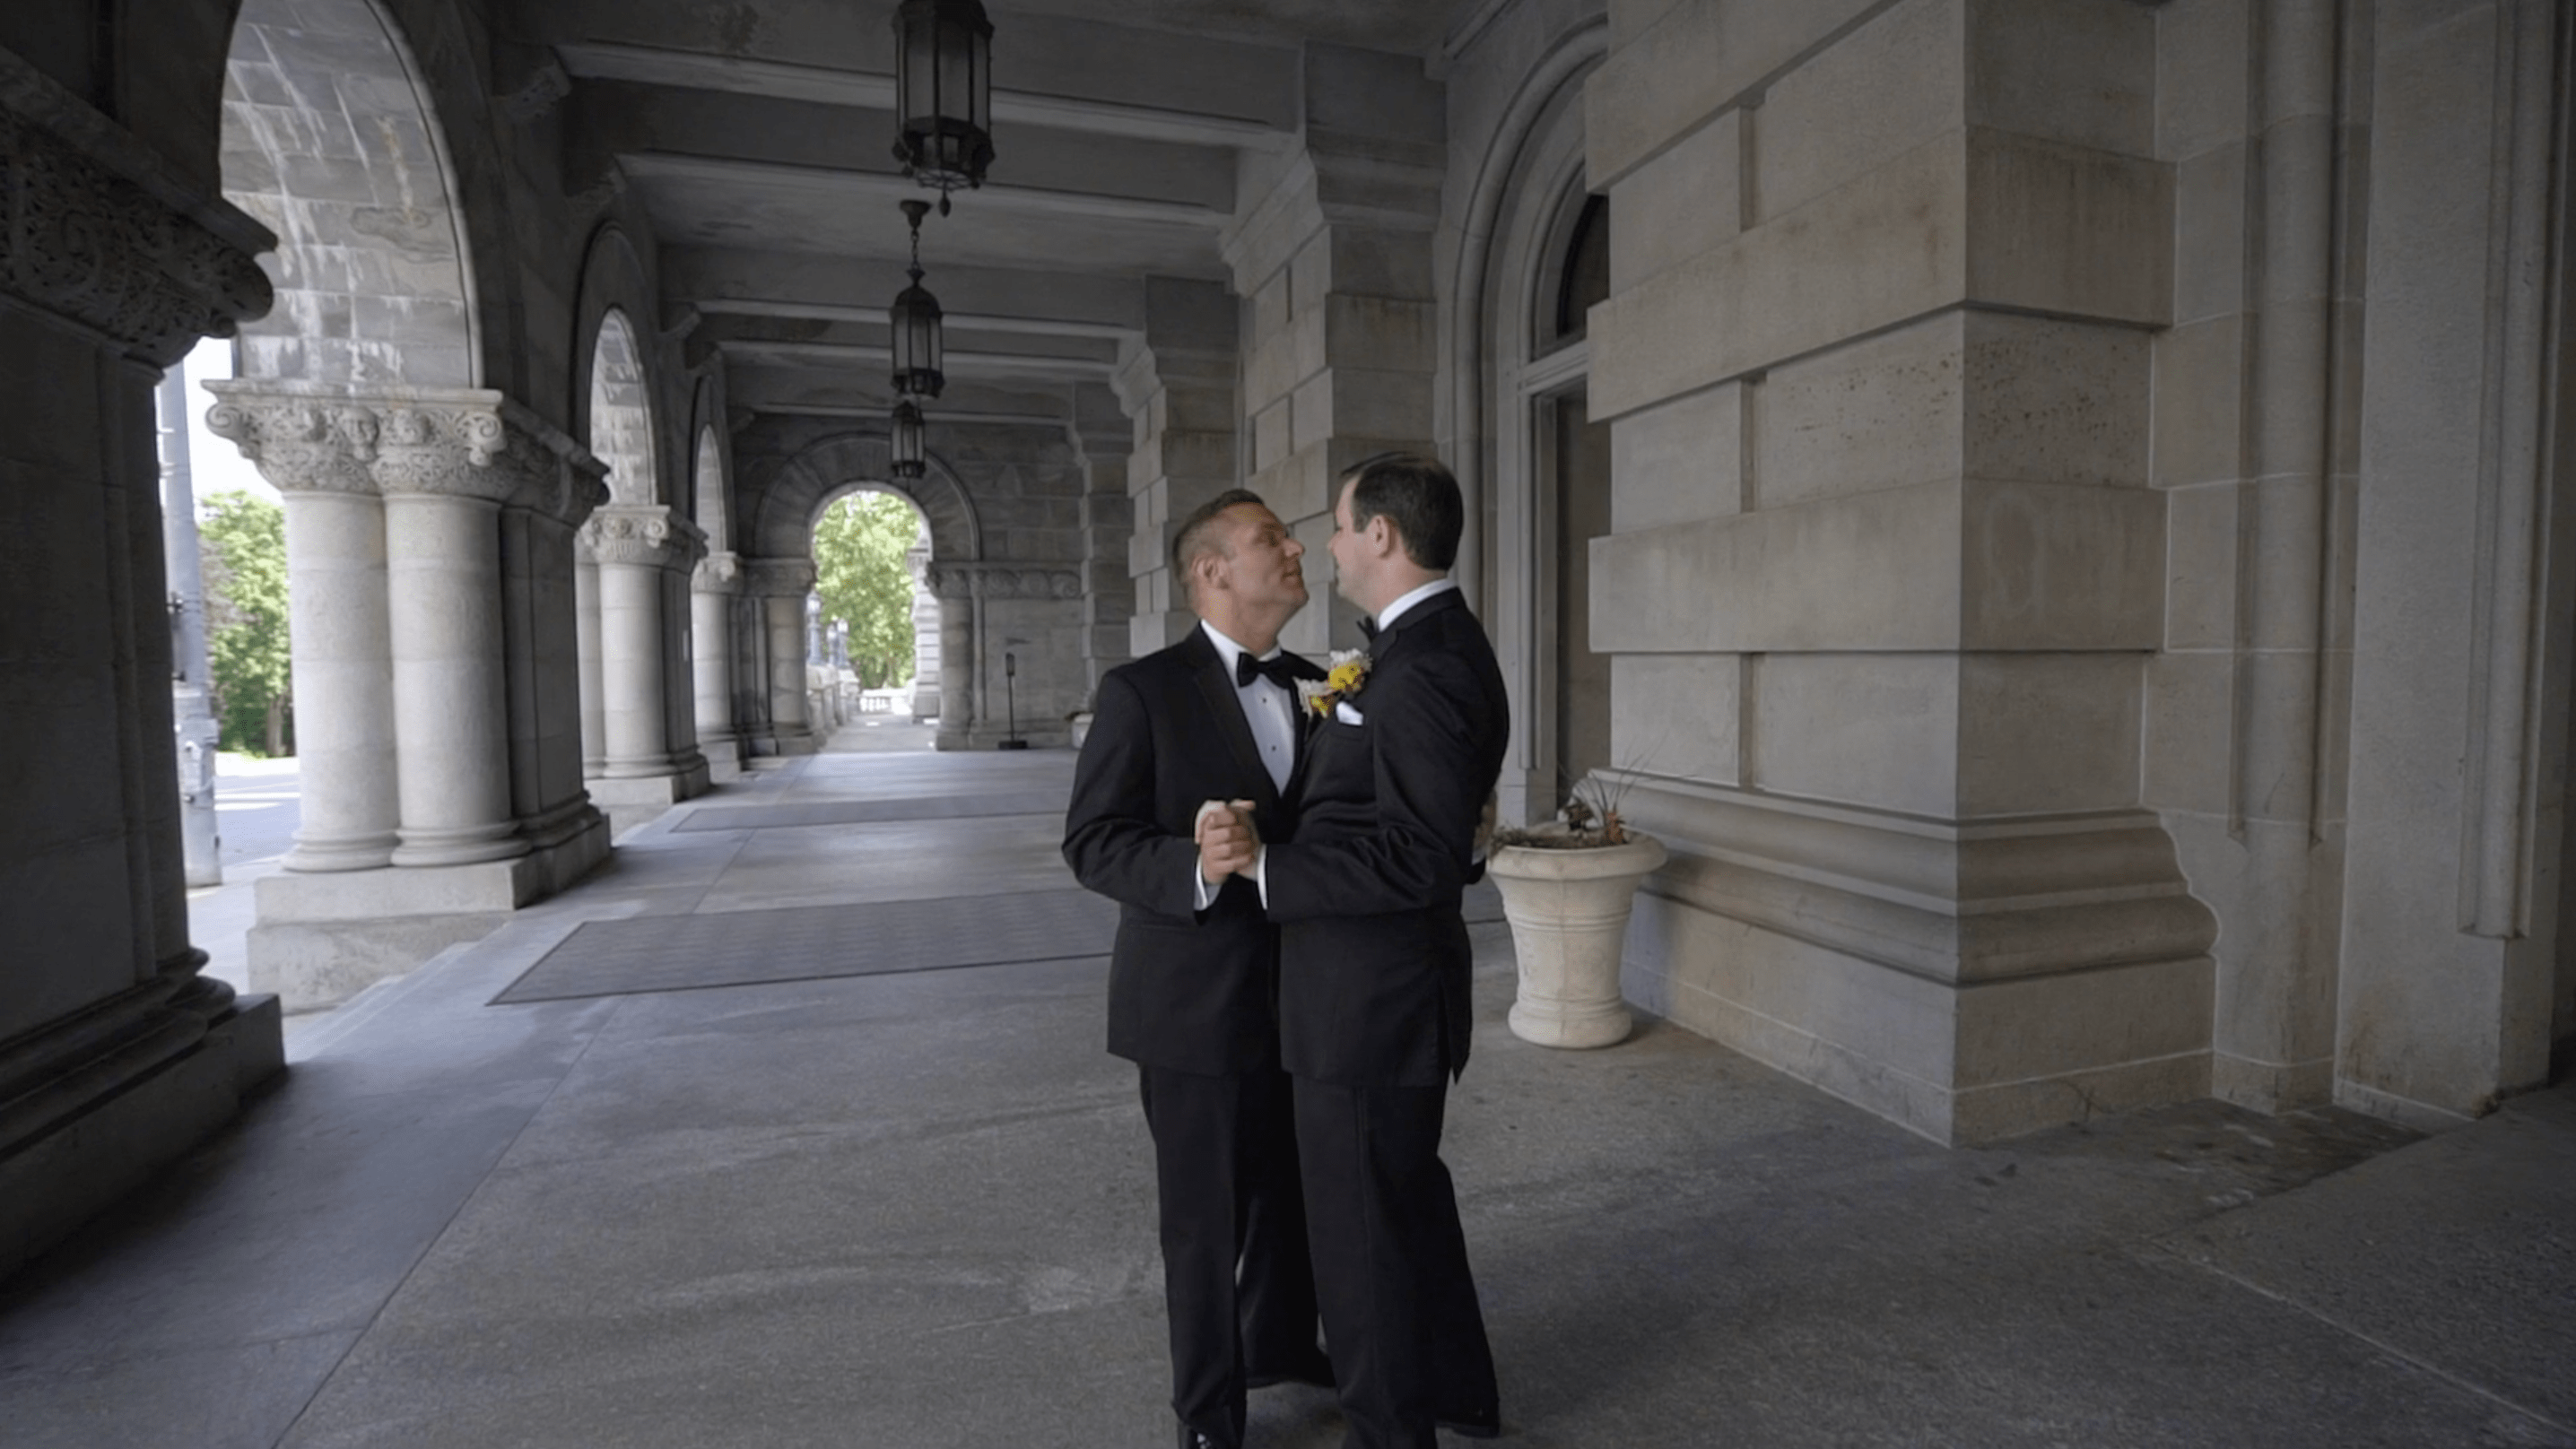 Sean + Chris | Albany, New York